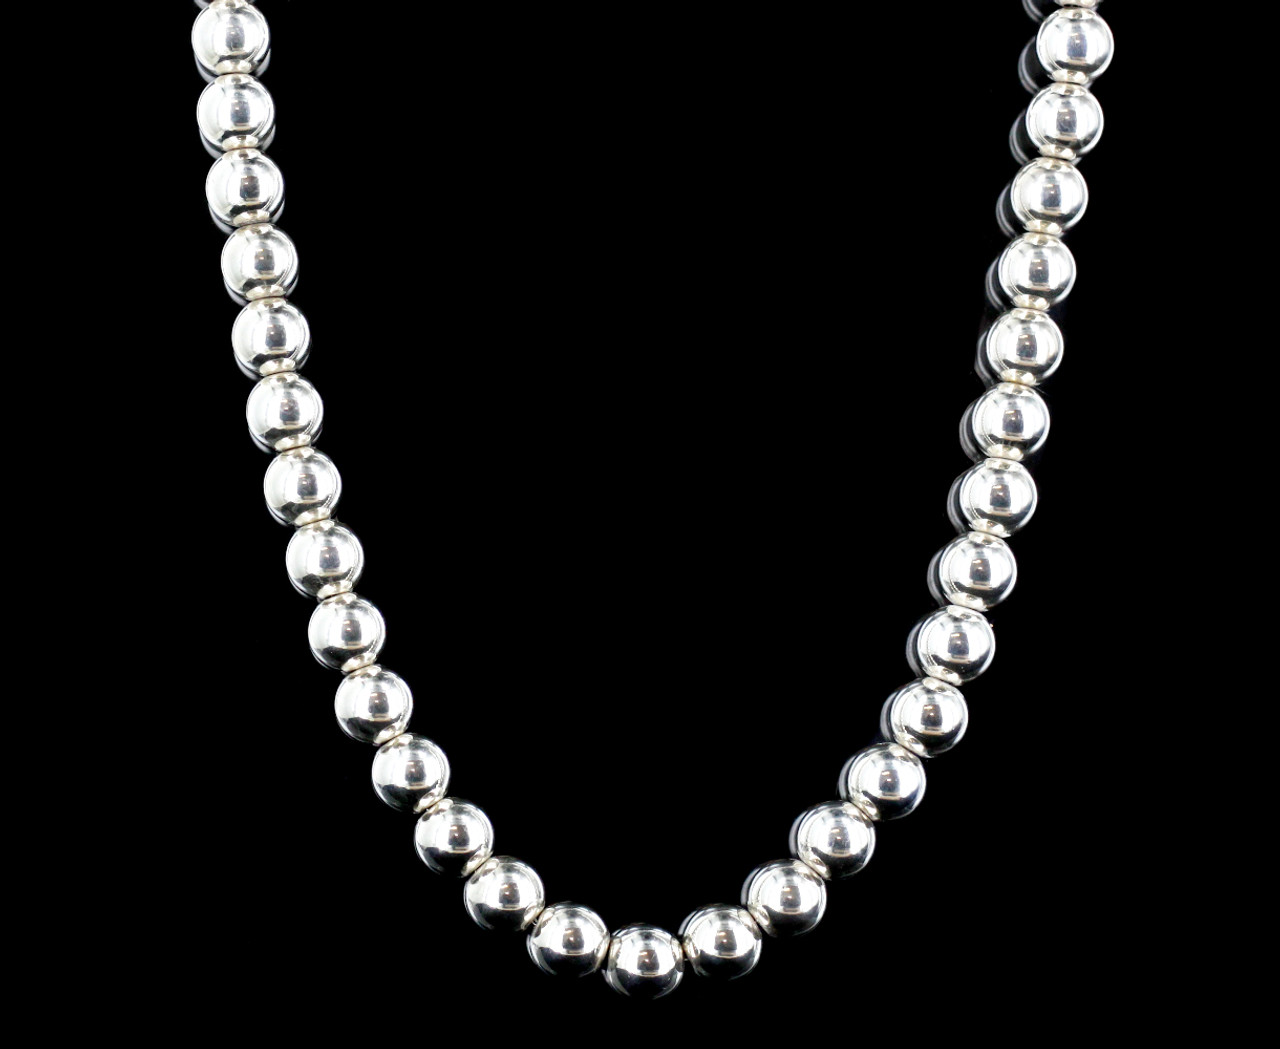 b2d14e53b Vintage Tiffany & Co Sterling Silver Ball Bead Necklace 18